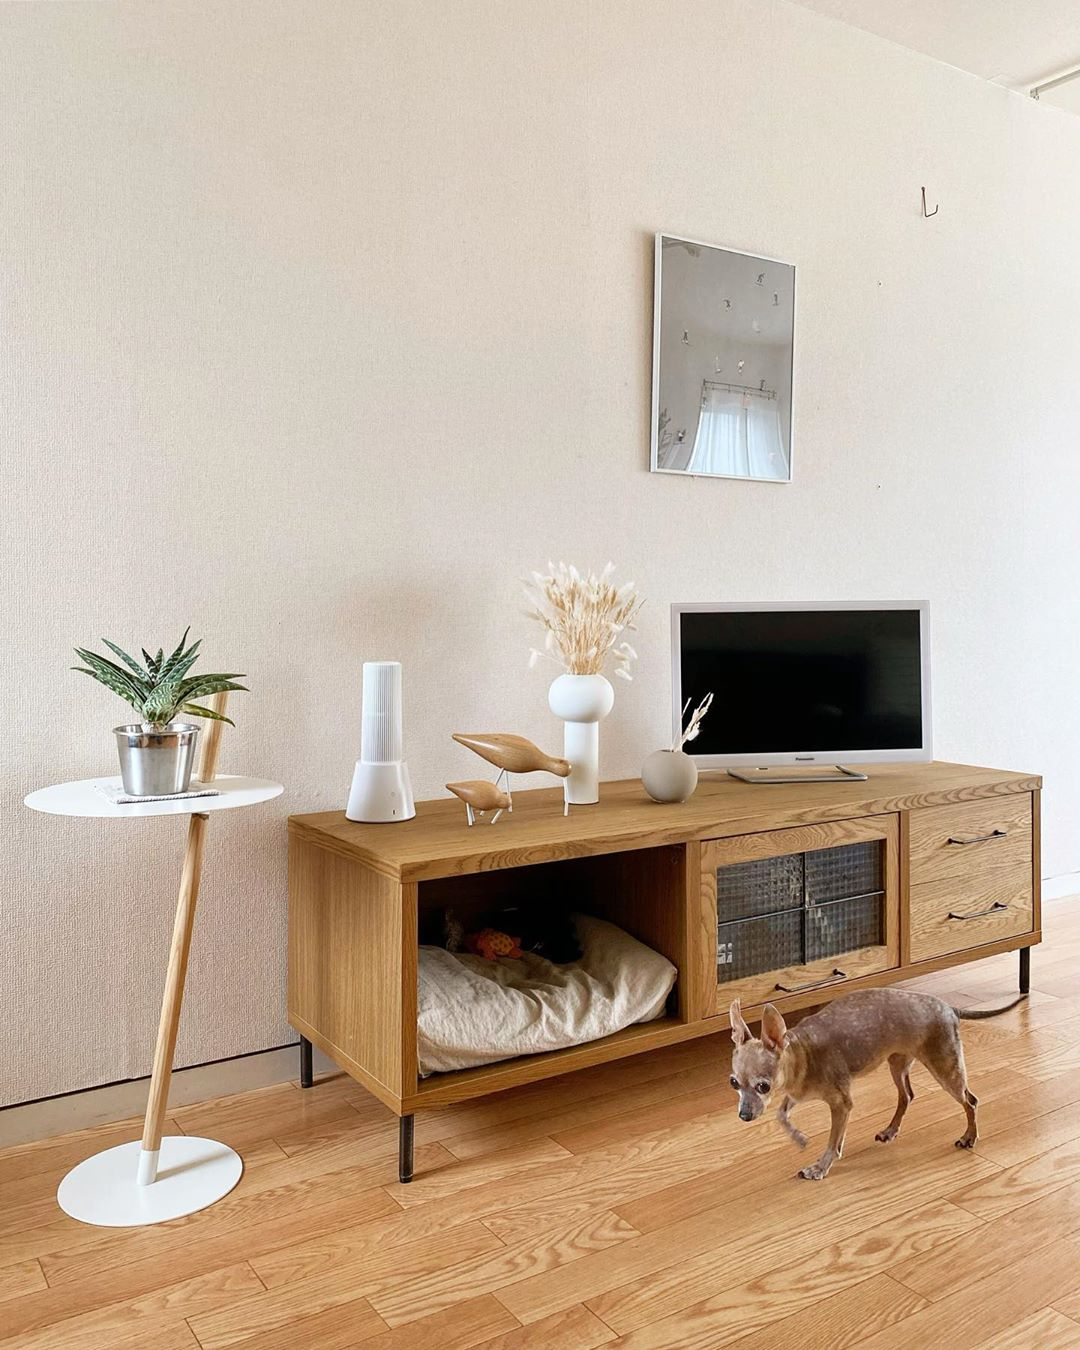 japanese home decor - spaces for dogs